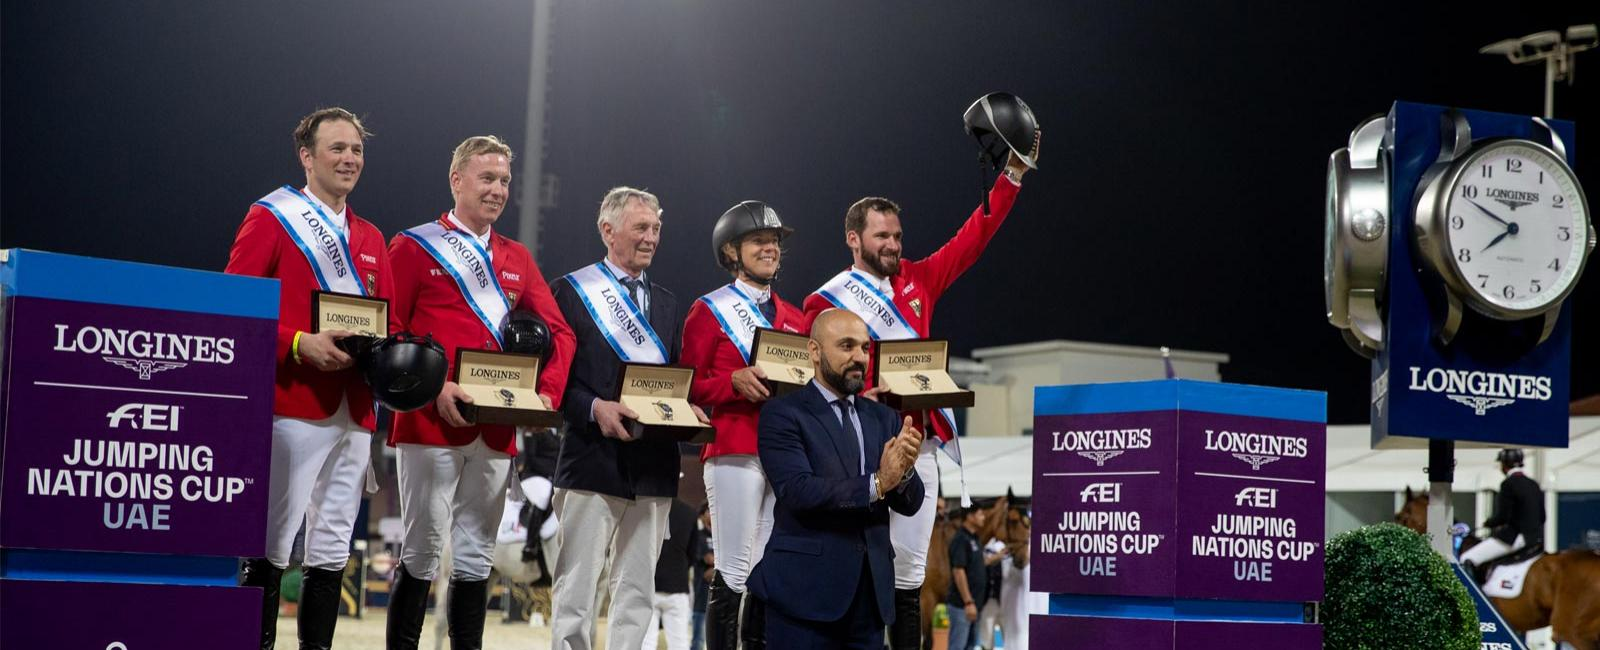 Longines FEI Jumping Nations Cup of UAE 2019; Jumping; 2019